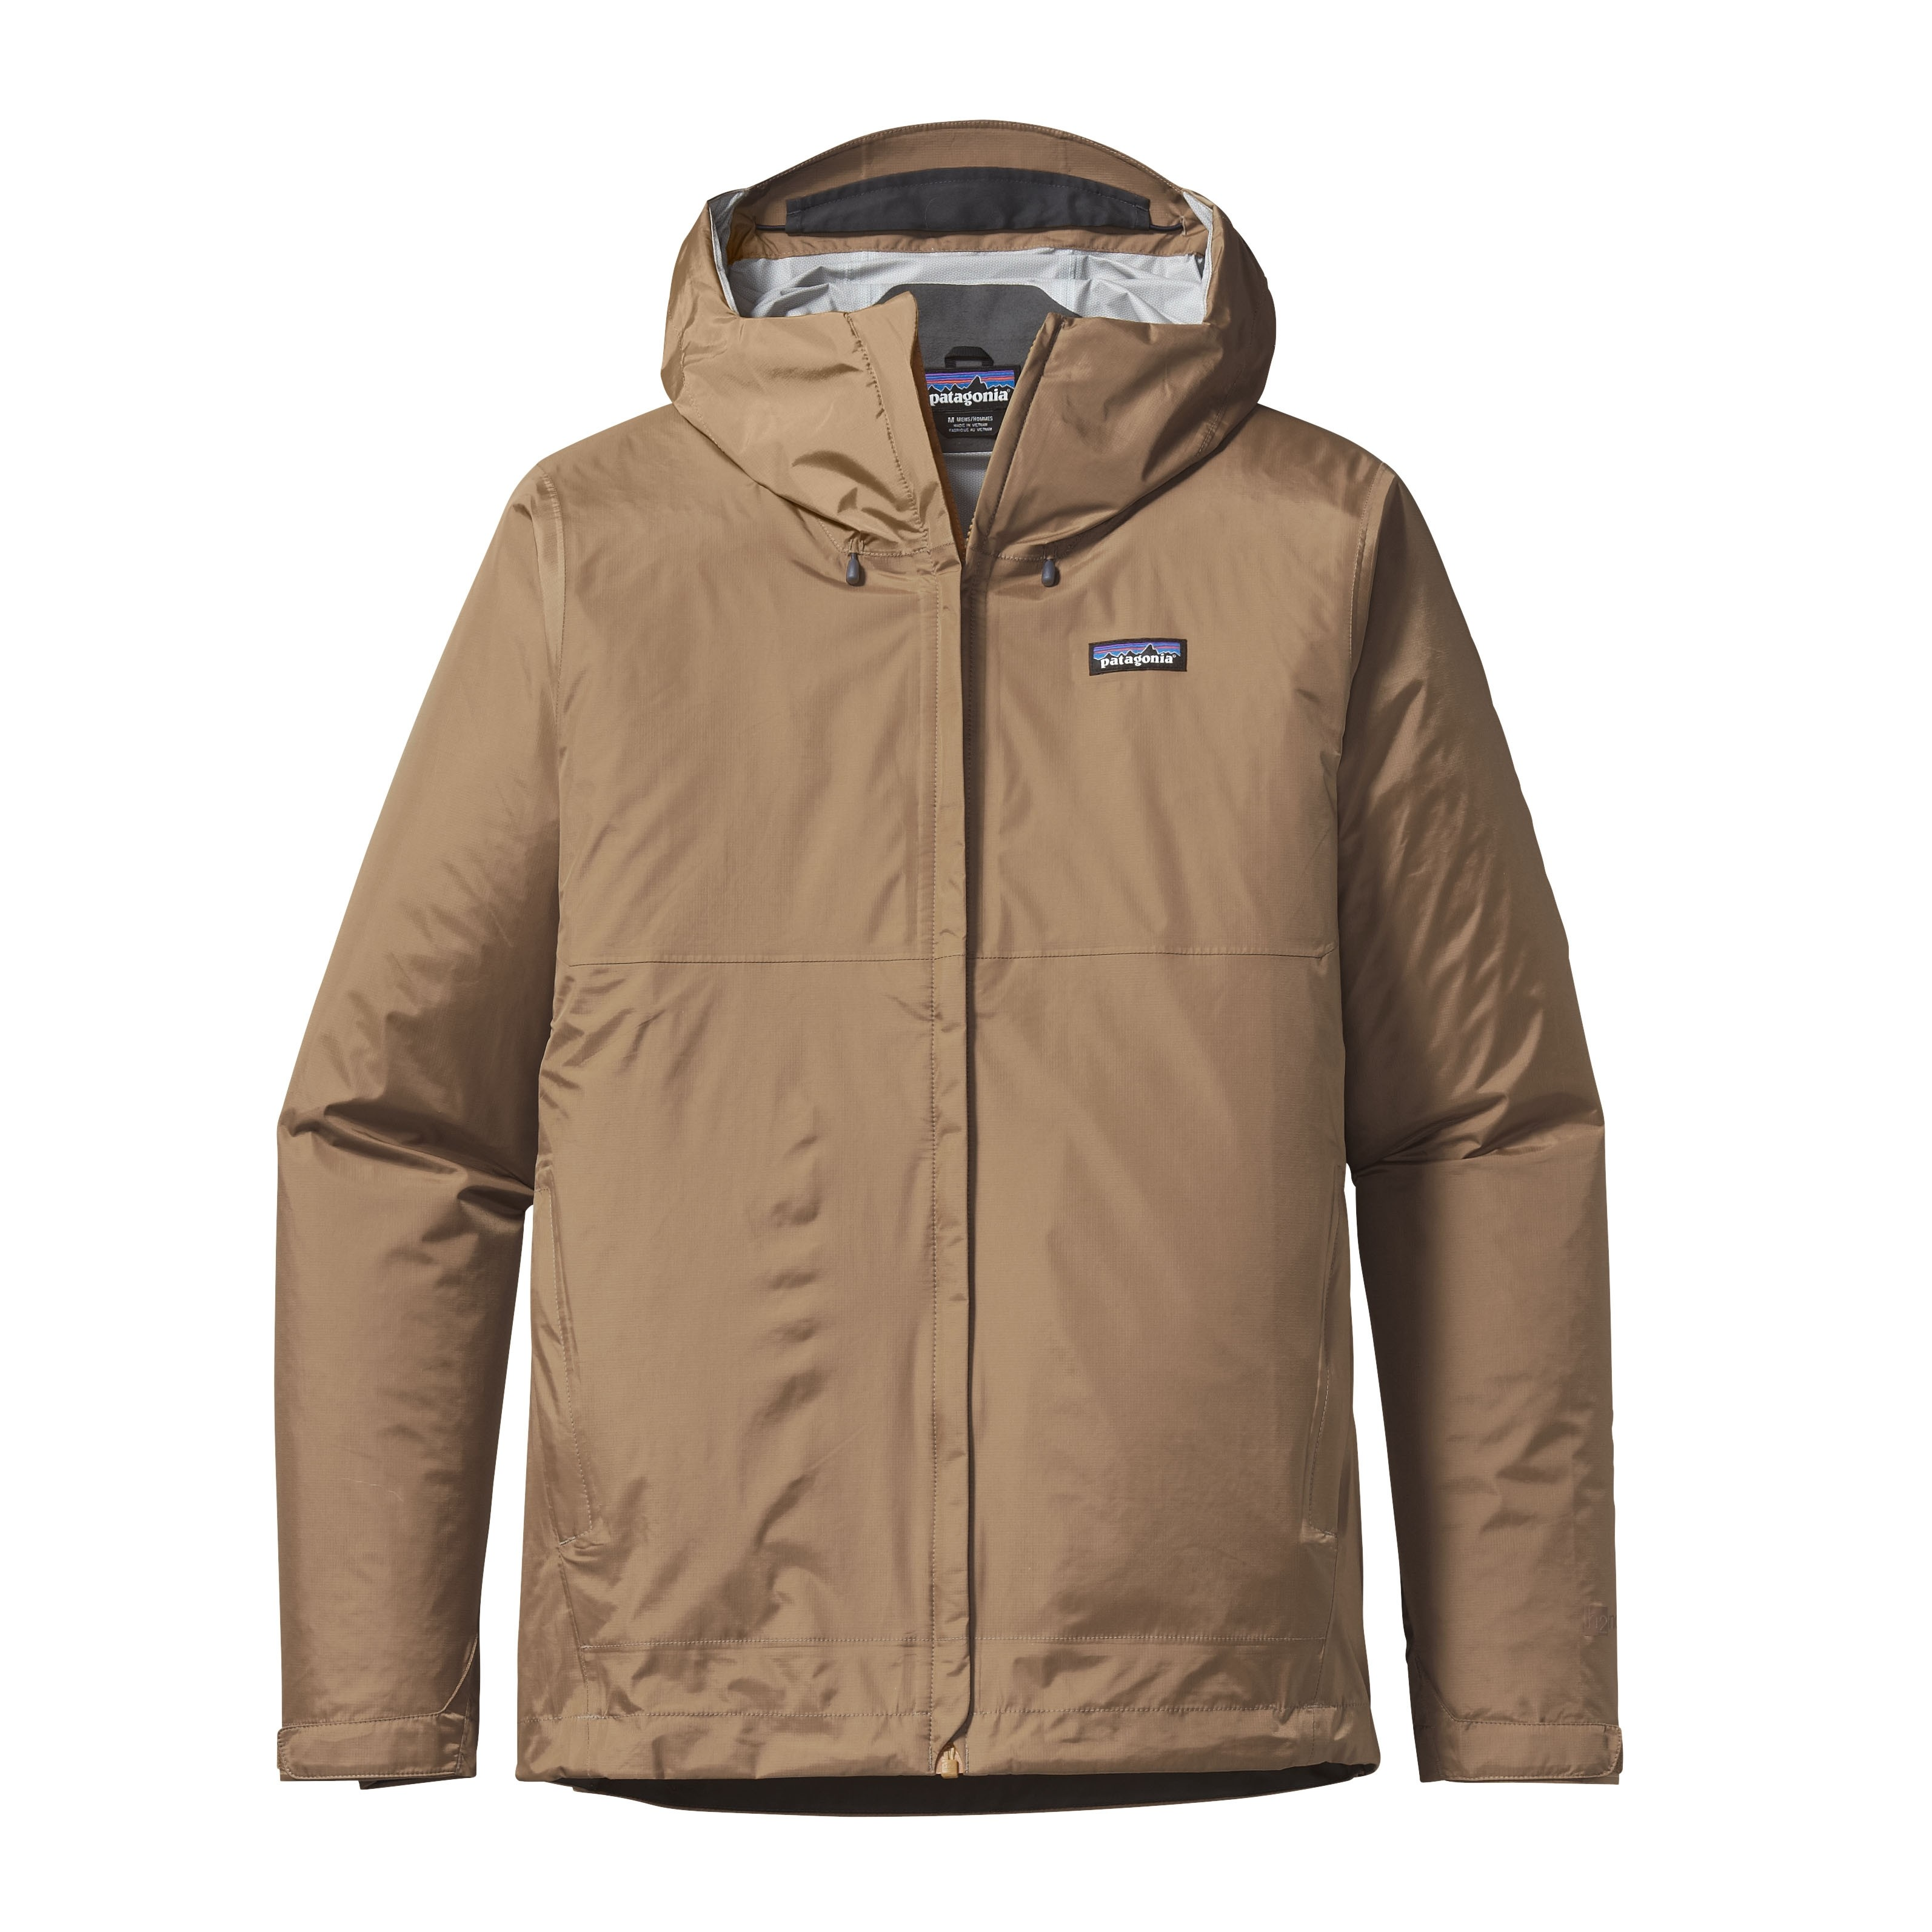 Patagonia and Carhartt Jackets | Naked Ape